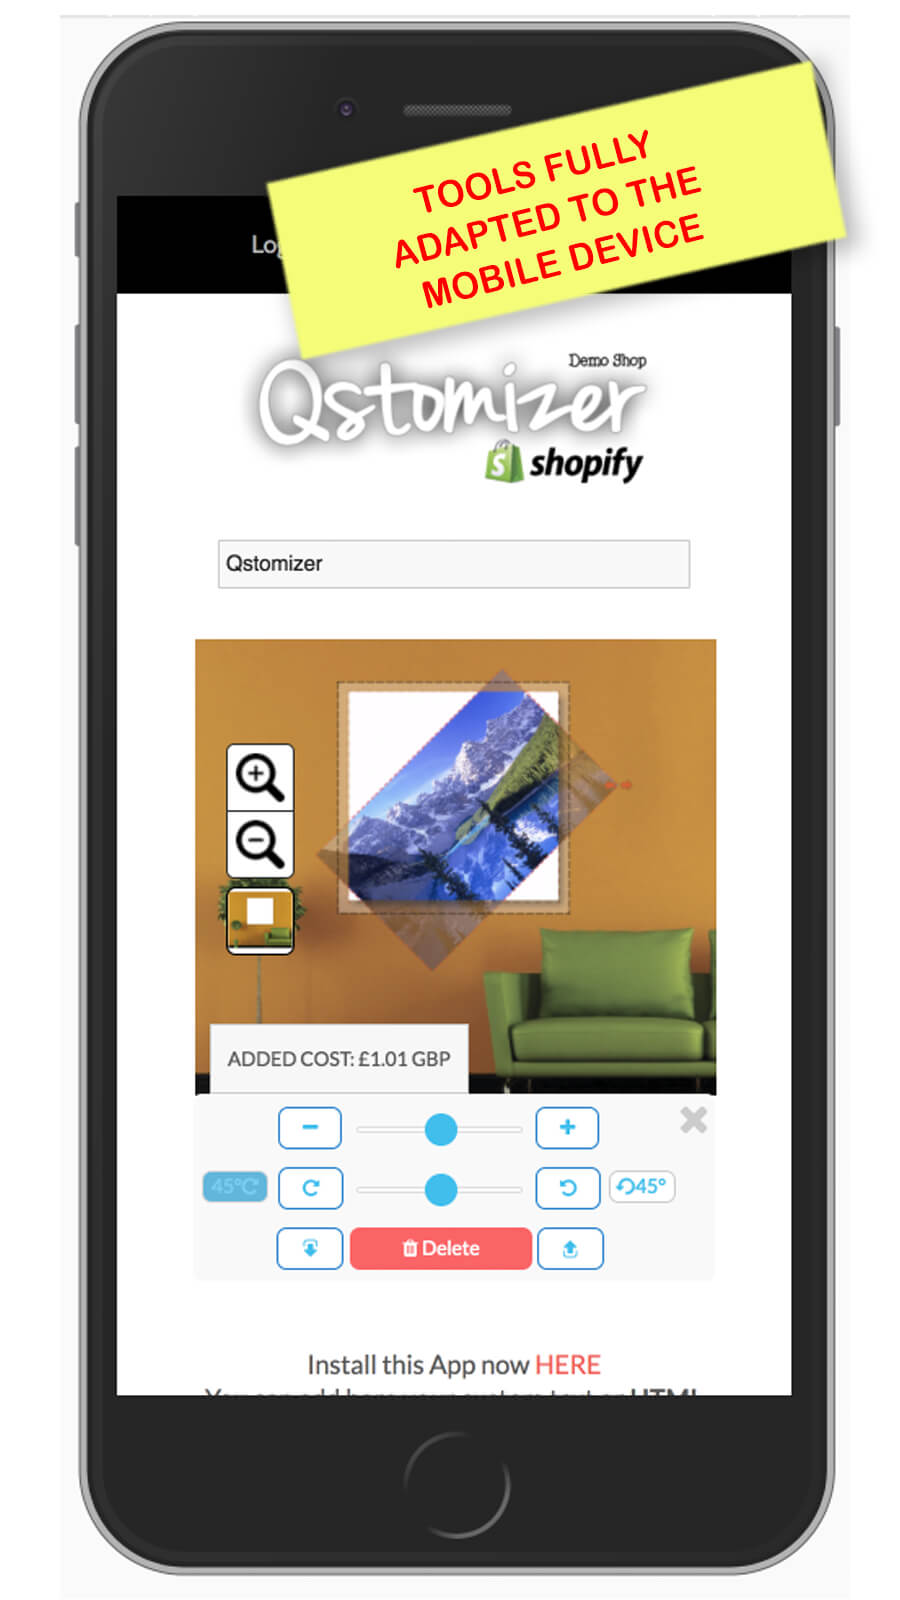 Qstomizer adapts its tools to the device screen